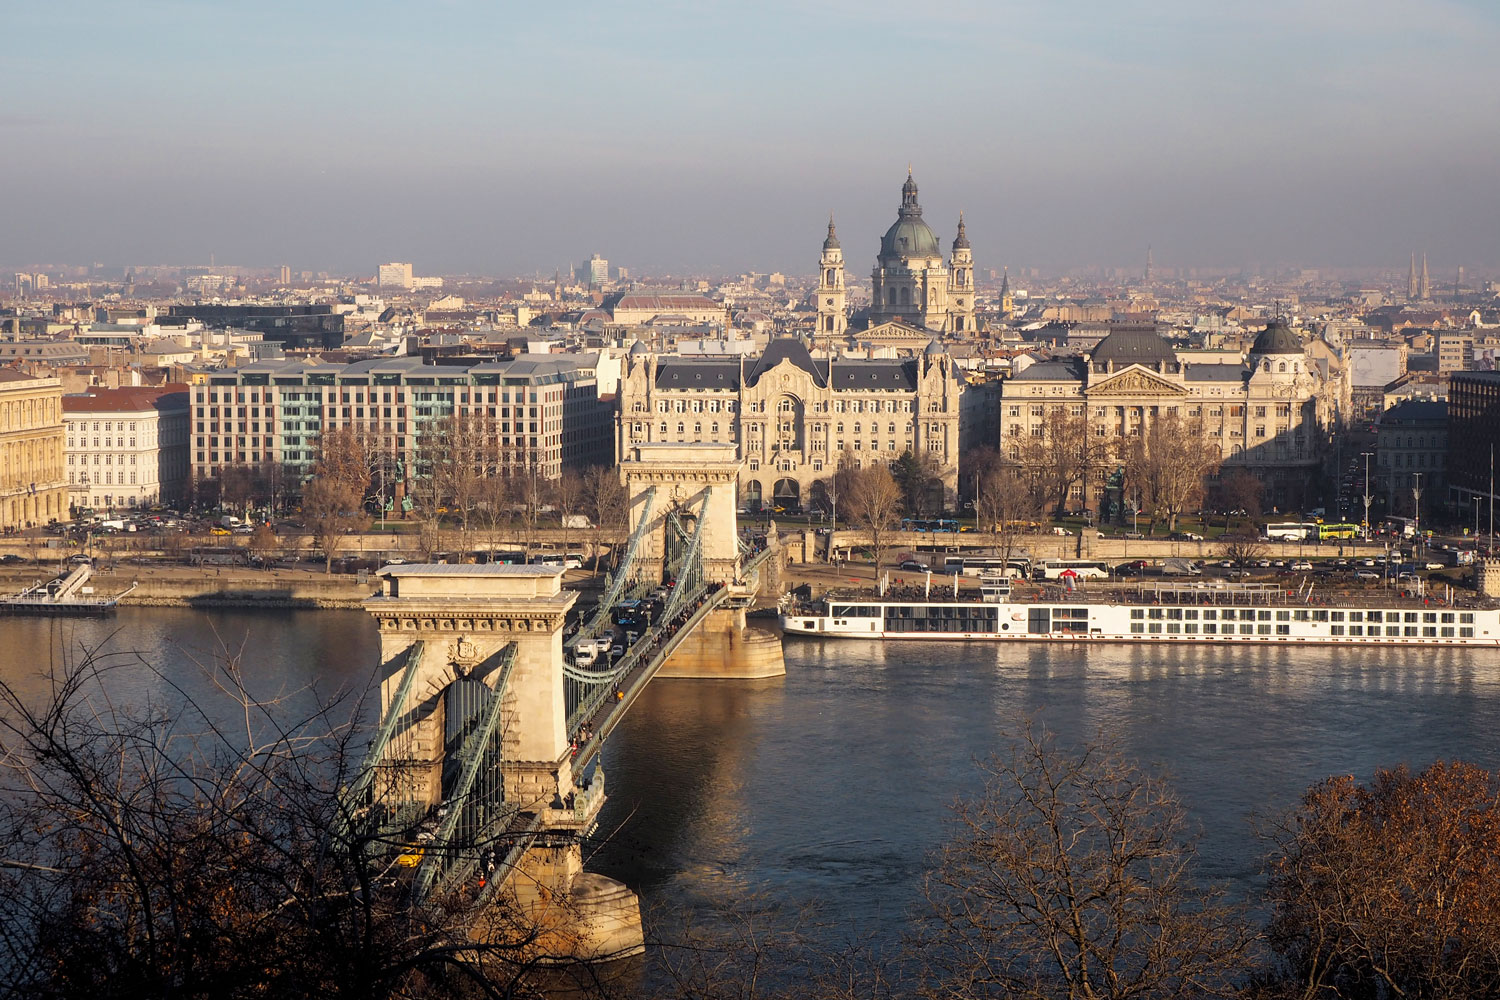 budapest-view-of-chain-bridge-zoe-newlove-travel-blog-review